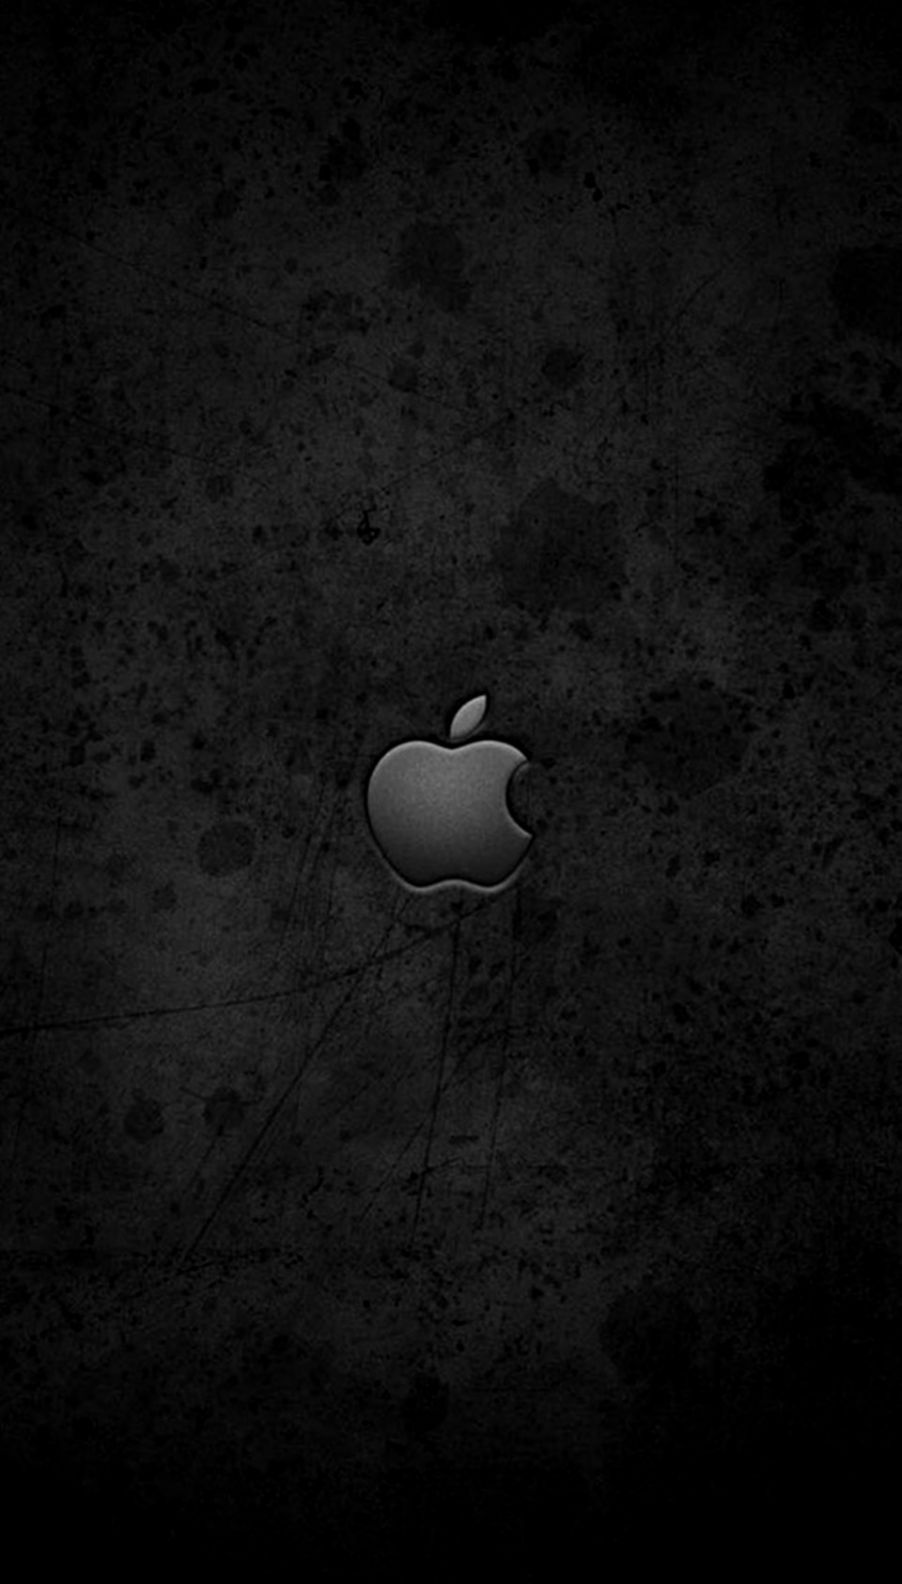 Black Apple Logo Wallpaper For Iphone 6 photos of Iphone